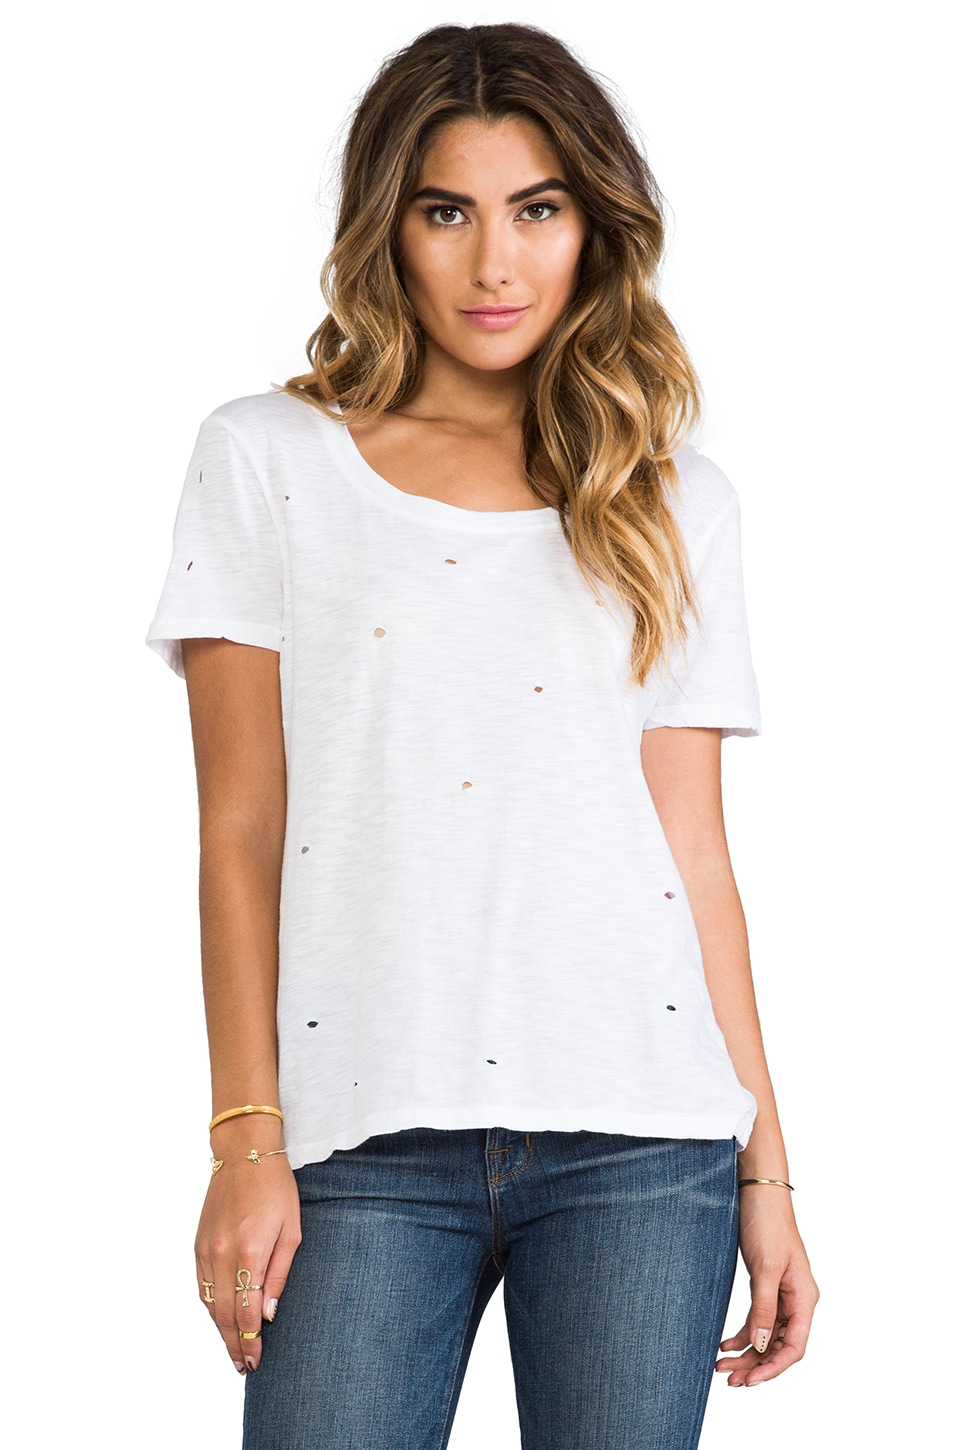 MONROW Distressed Boyfriend Tee in White